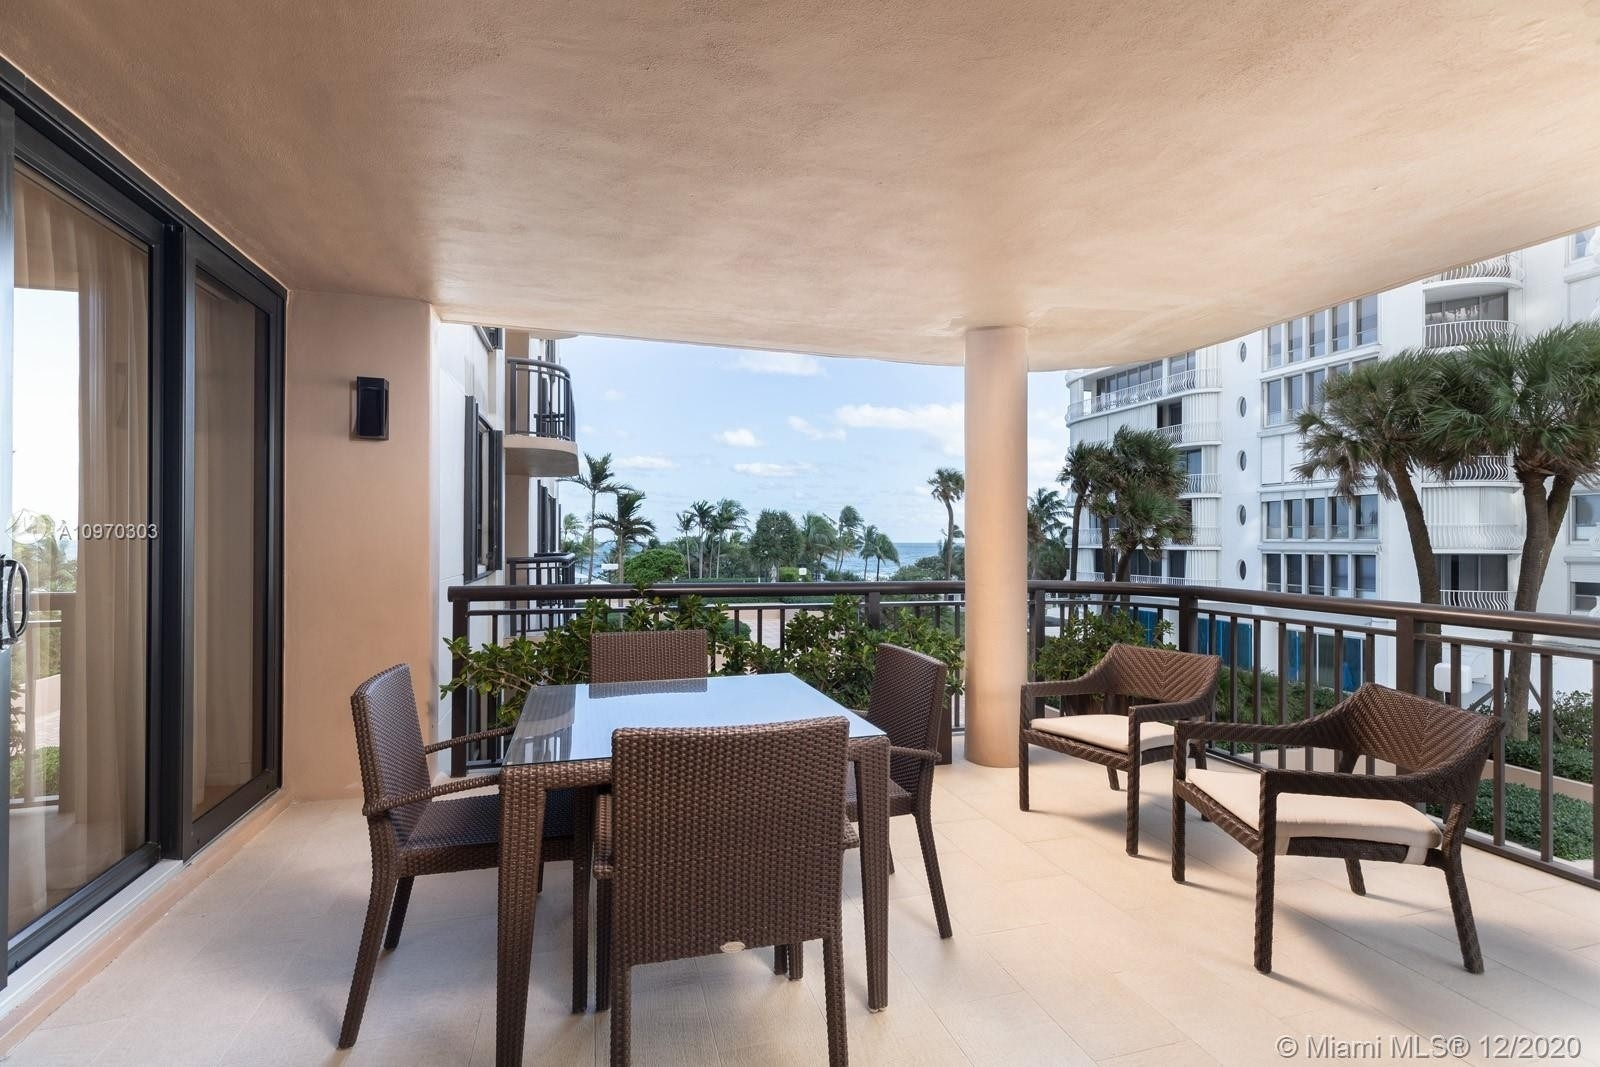 5. Condominiums for Sale at 10175 Collins Ave , 204 Bal Harbour, FL 33154